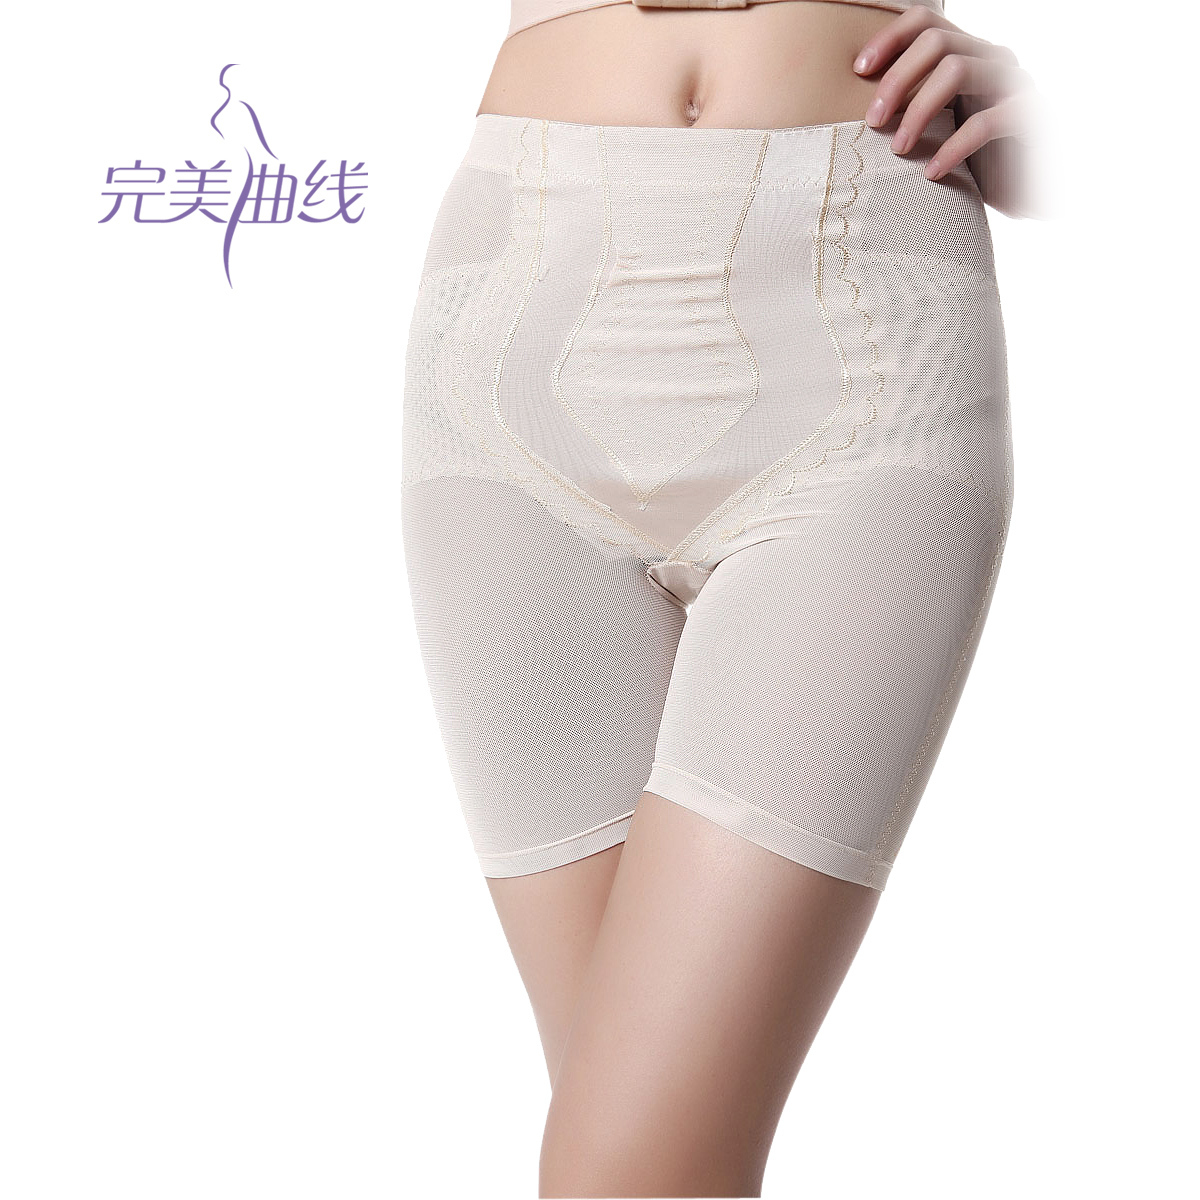 Perfect curve seamless tight fitting postpartum body shaping pants corset slimming panties female 8302 waist corset